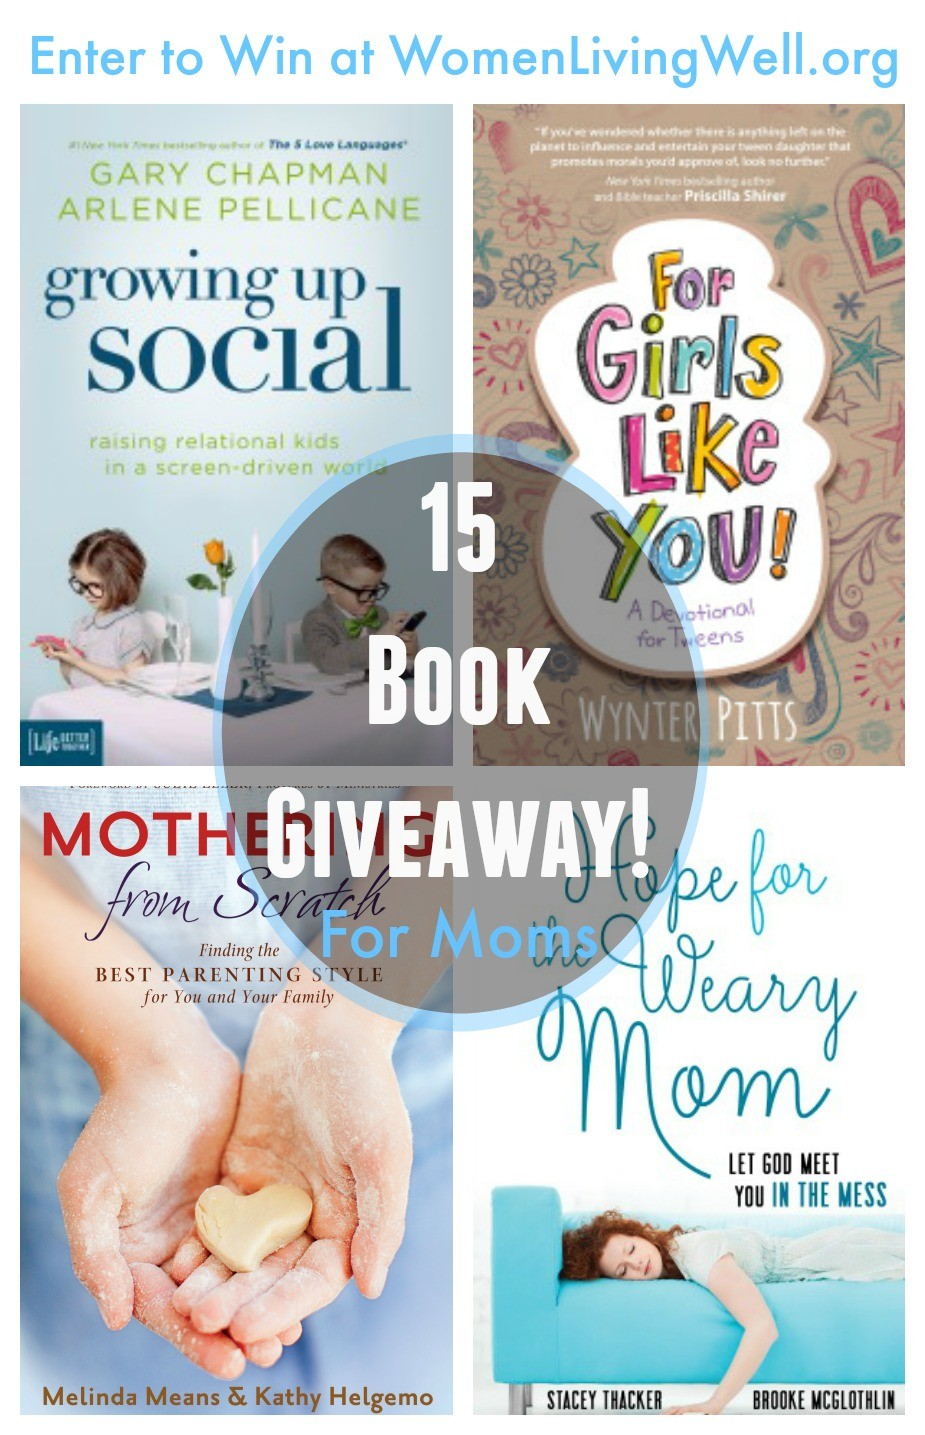 15 Book Giveaway For Moms!